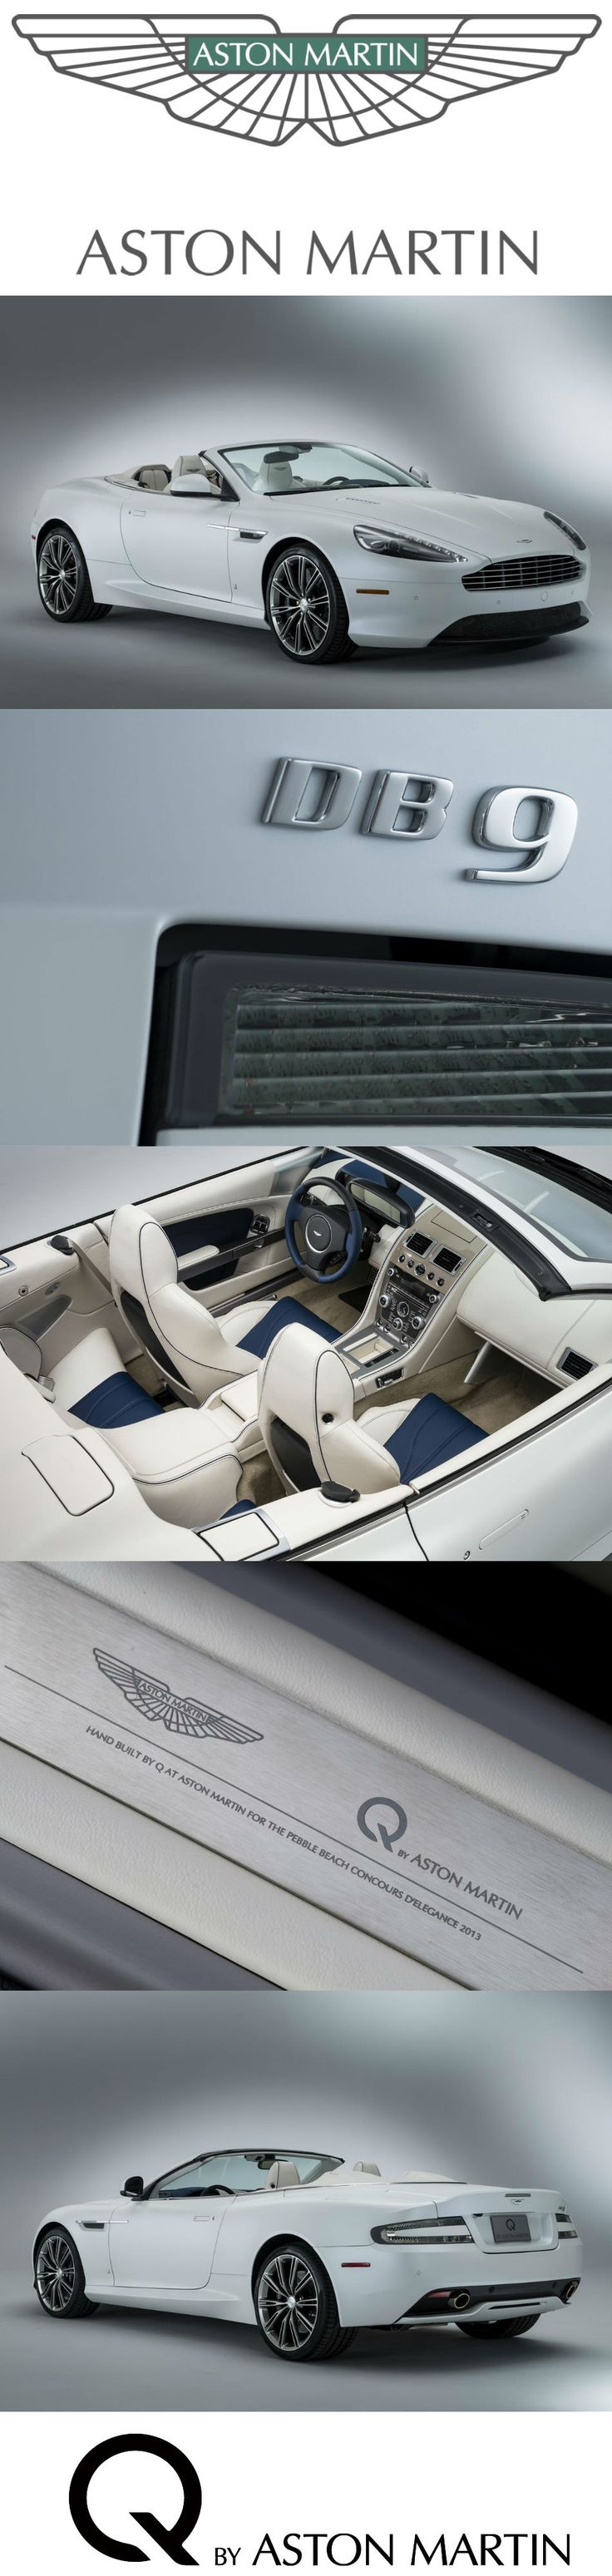 This Q by Aston Martin DB9 Volante embodies the calm palette and evocative imagery of the SoCal lifestyle. Developed along a nautical theme, taking the clean lines of a superyacht as inspiration, with Pure White Satin paint and bright metal detailing. Discover more about Q by Aston Martin